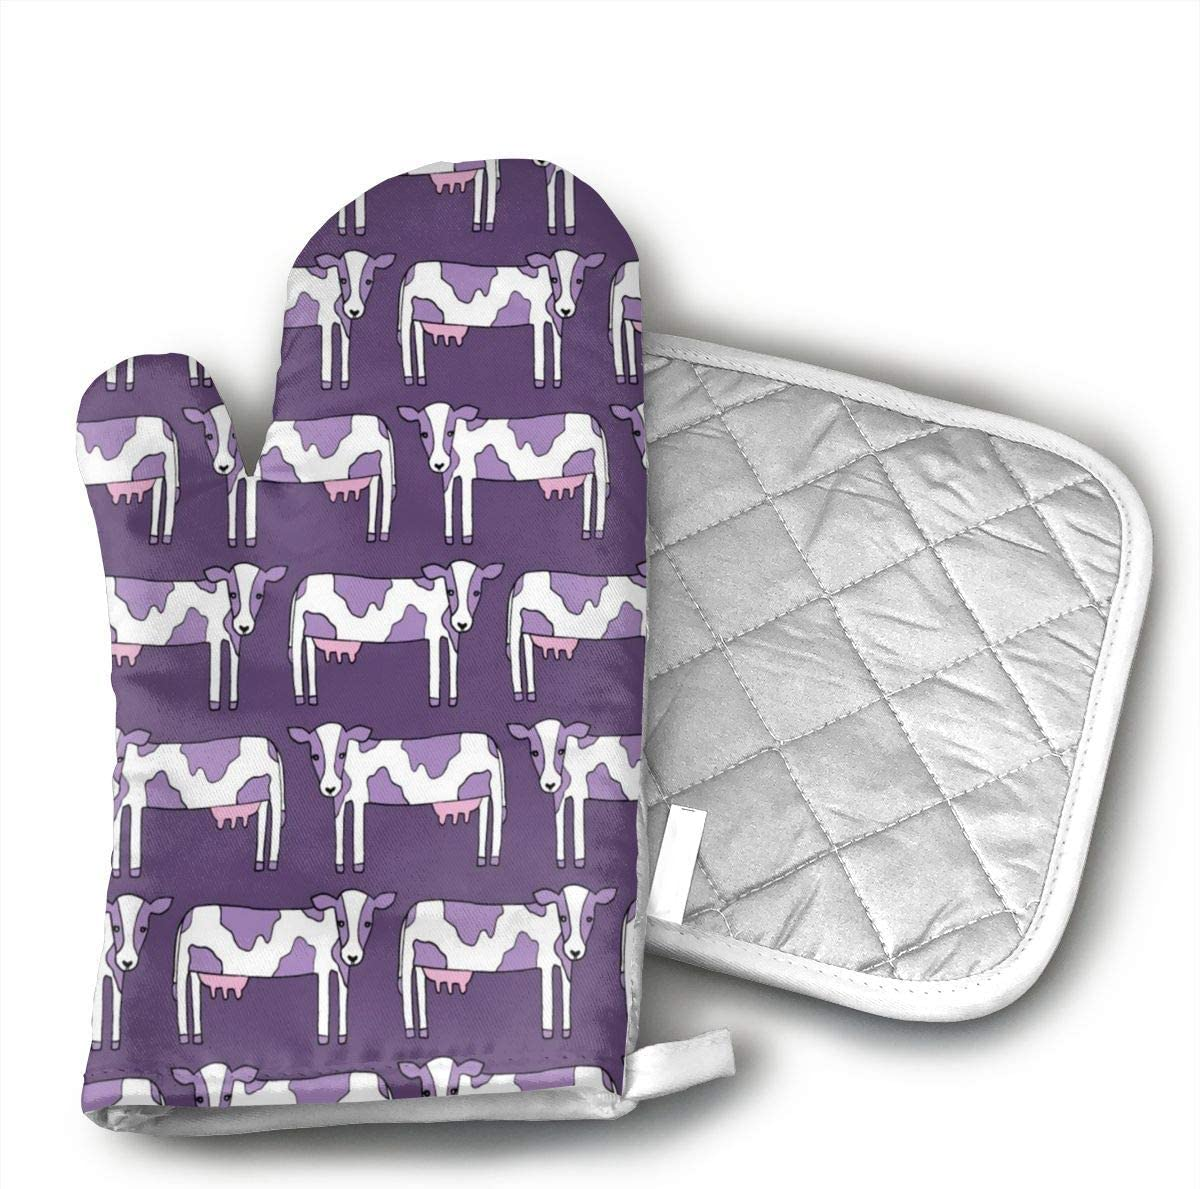 Cow Cartoon Purple Heat Resistant Oven Mitts,Non-Slip Kitchen Glove for Baking, Barbeque